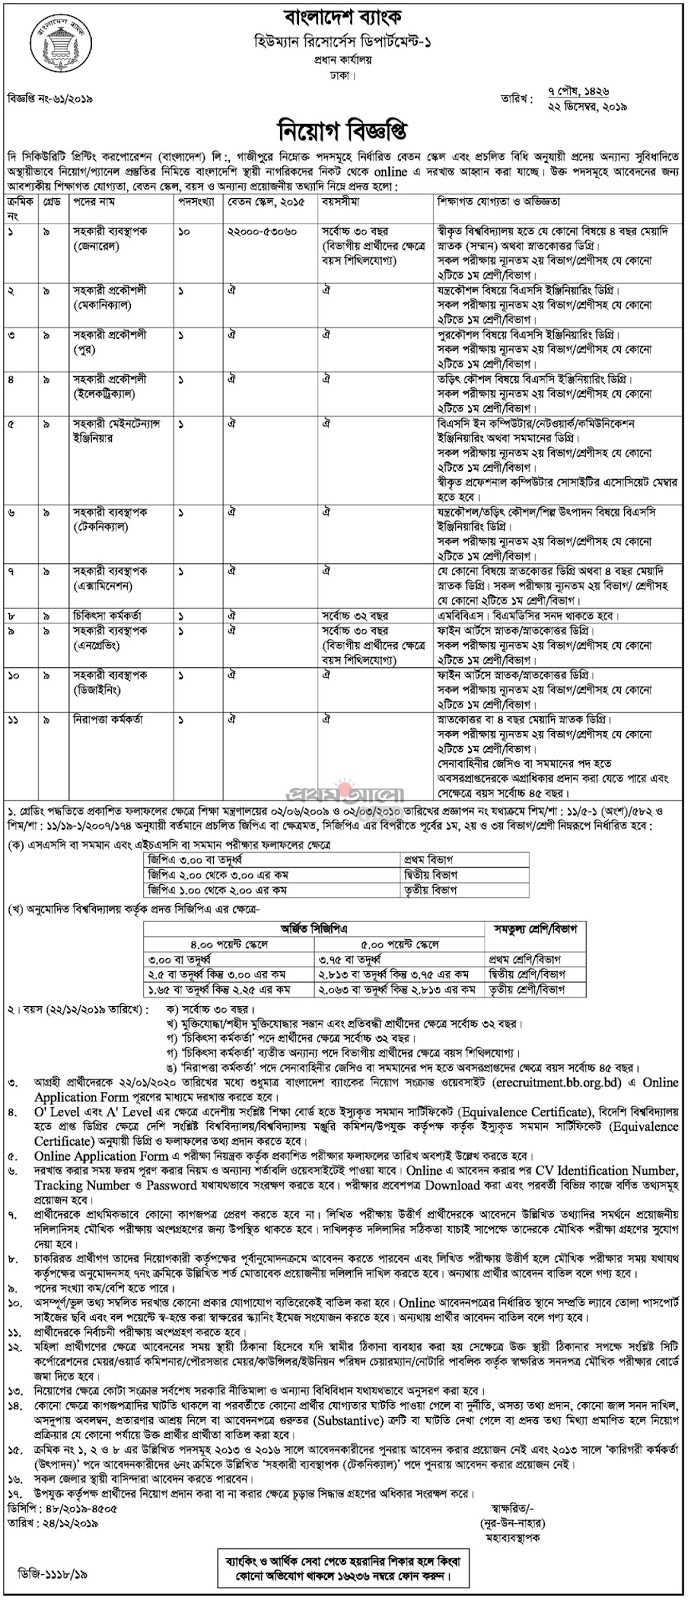 Recent Bangladesh Bank Job Circular 2020